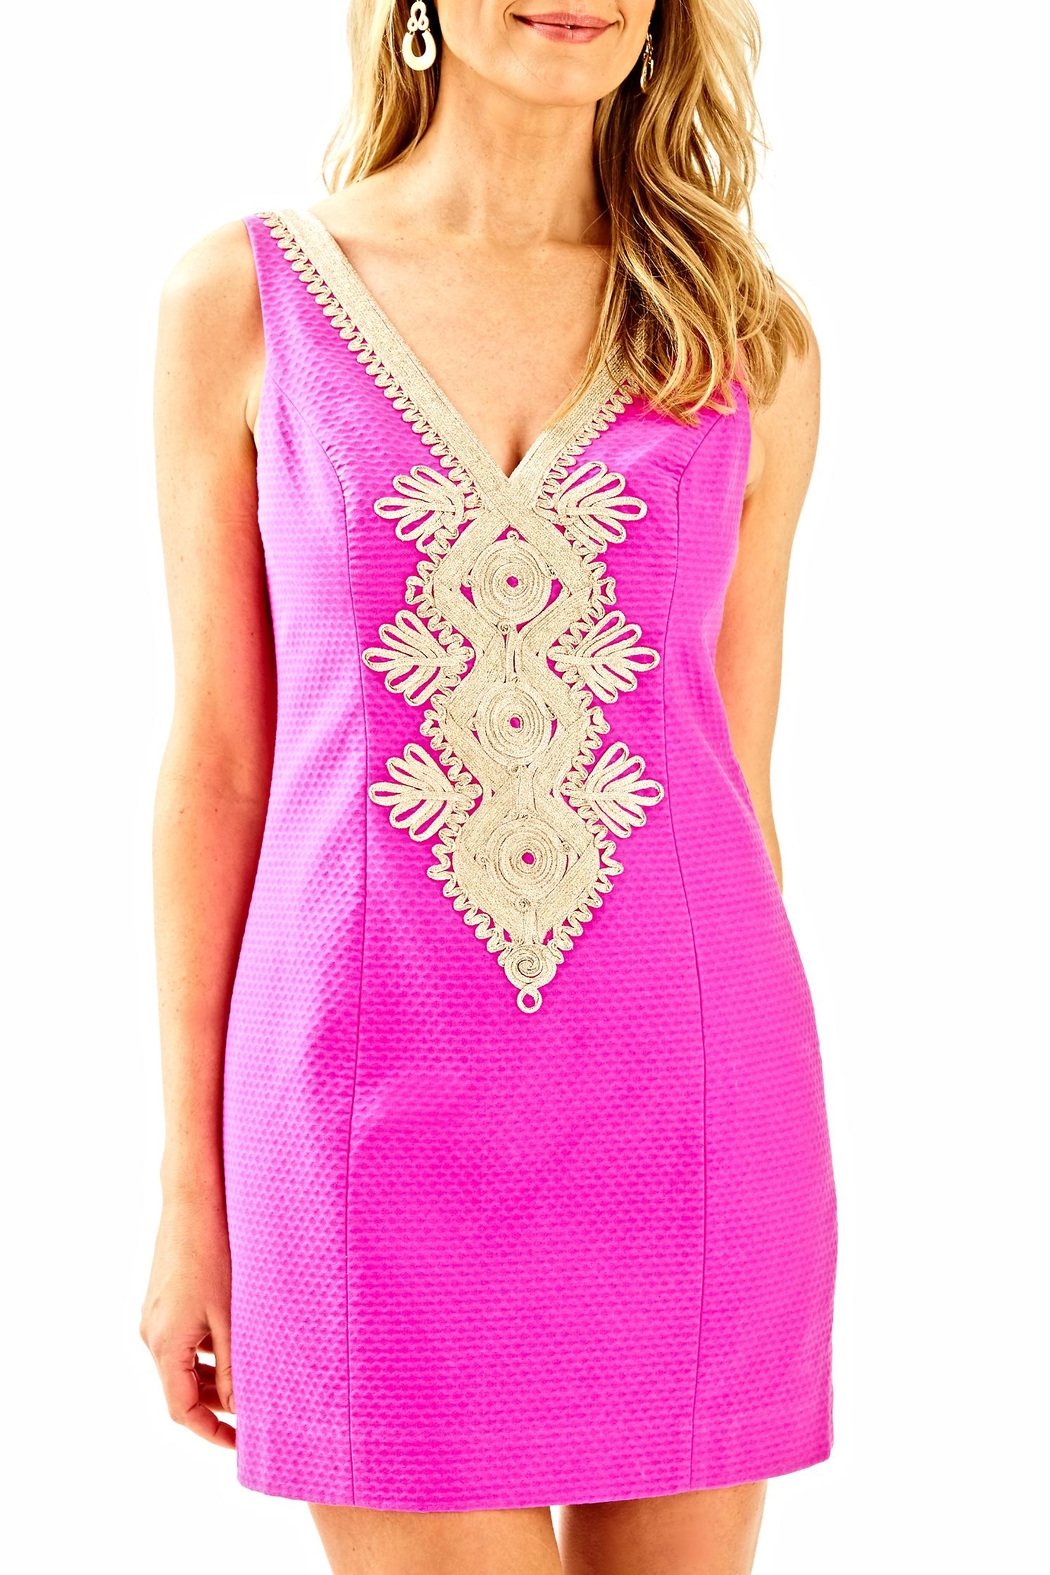 Lilly Pulitzer Junie Sheath Dress - Main Image